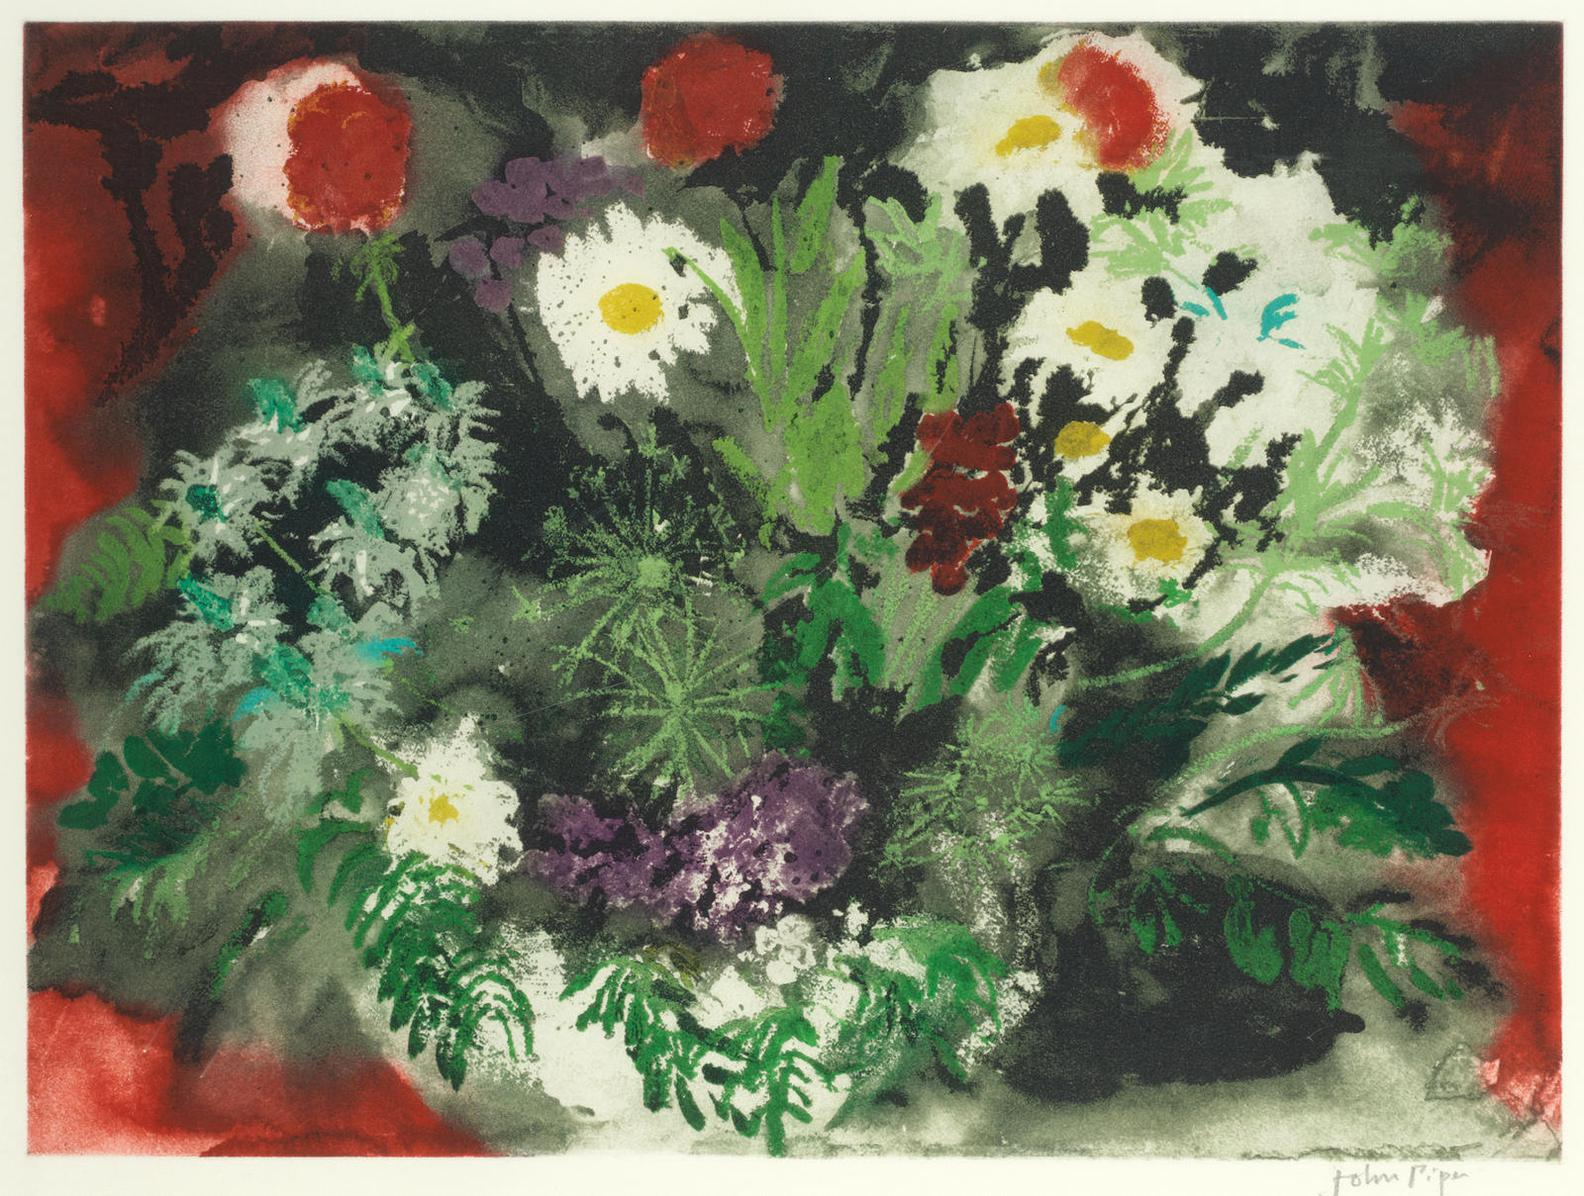 John Piper-Late Summer Flowers (Levinson 419)-1989